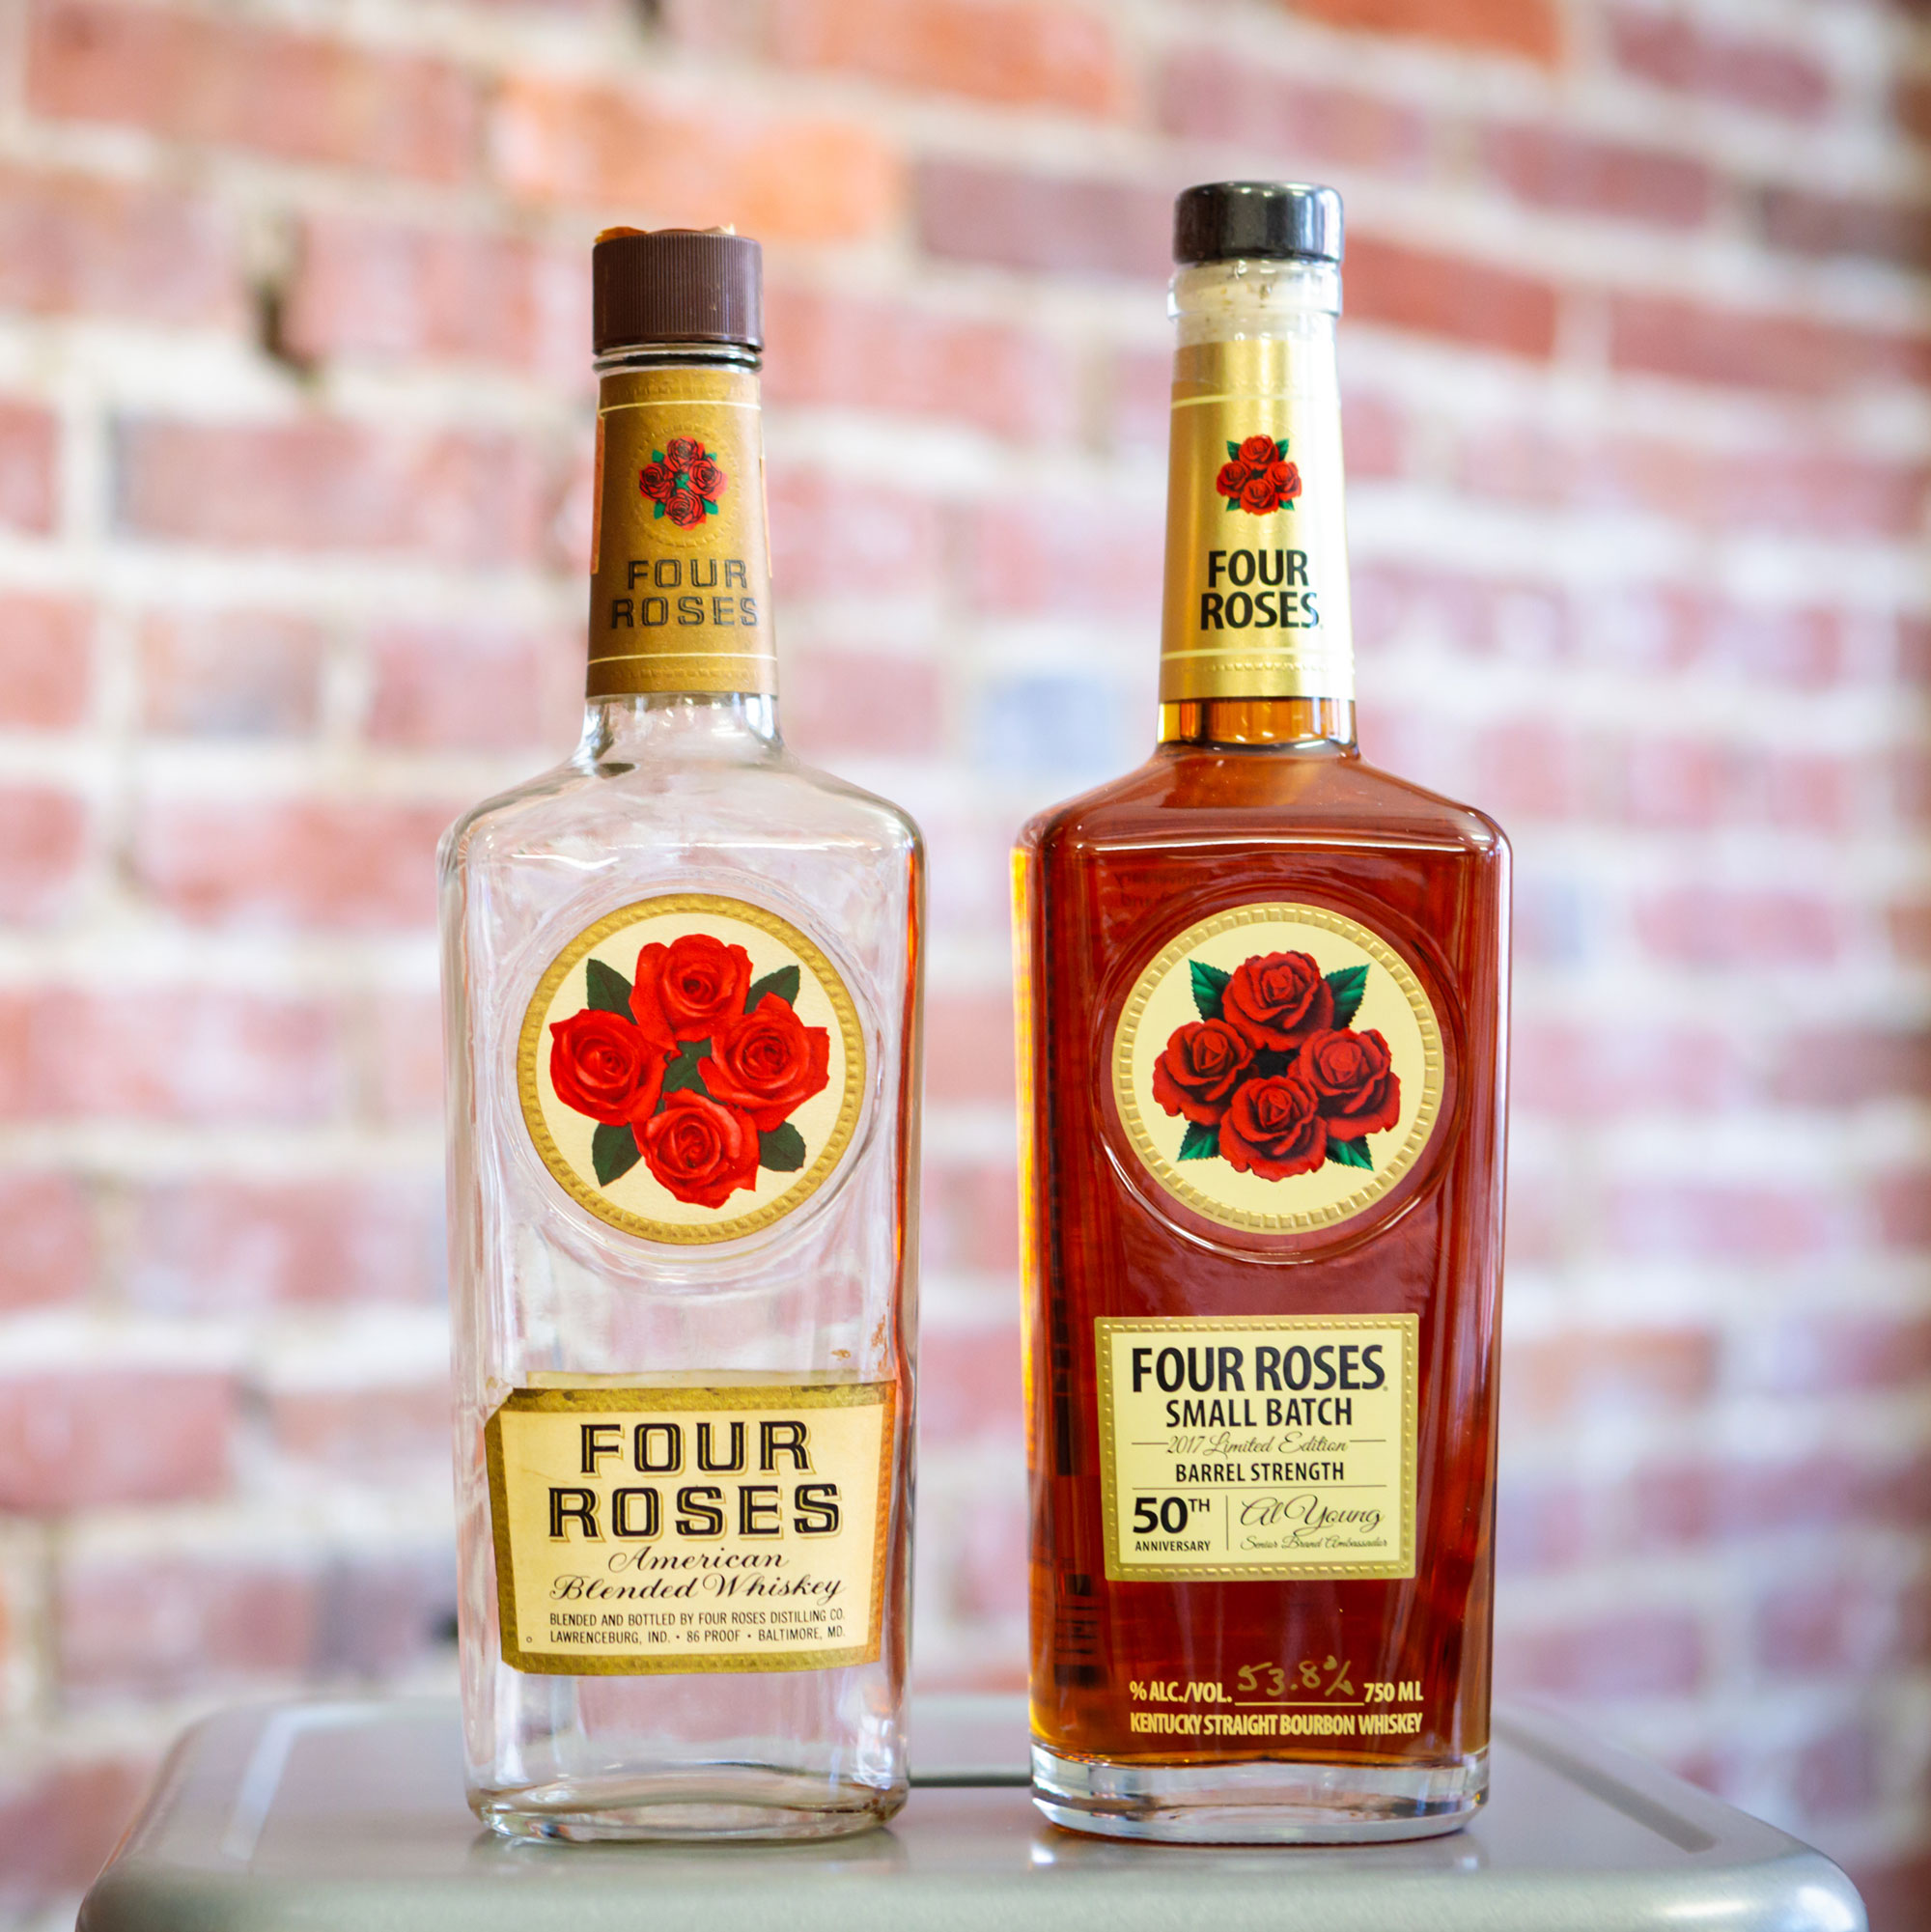 bottles of Four Roses Blended Whiskey and Four Roses Small Batch Al Young 50th Anniversary